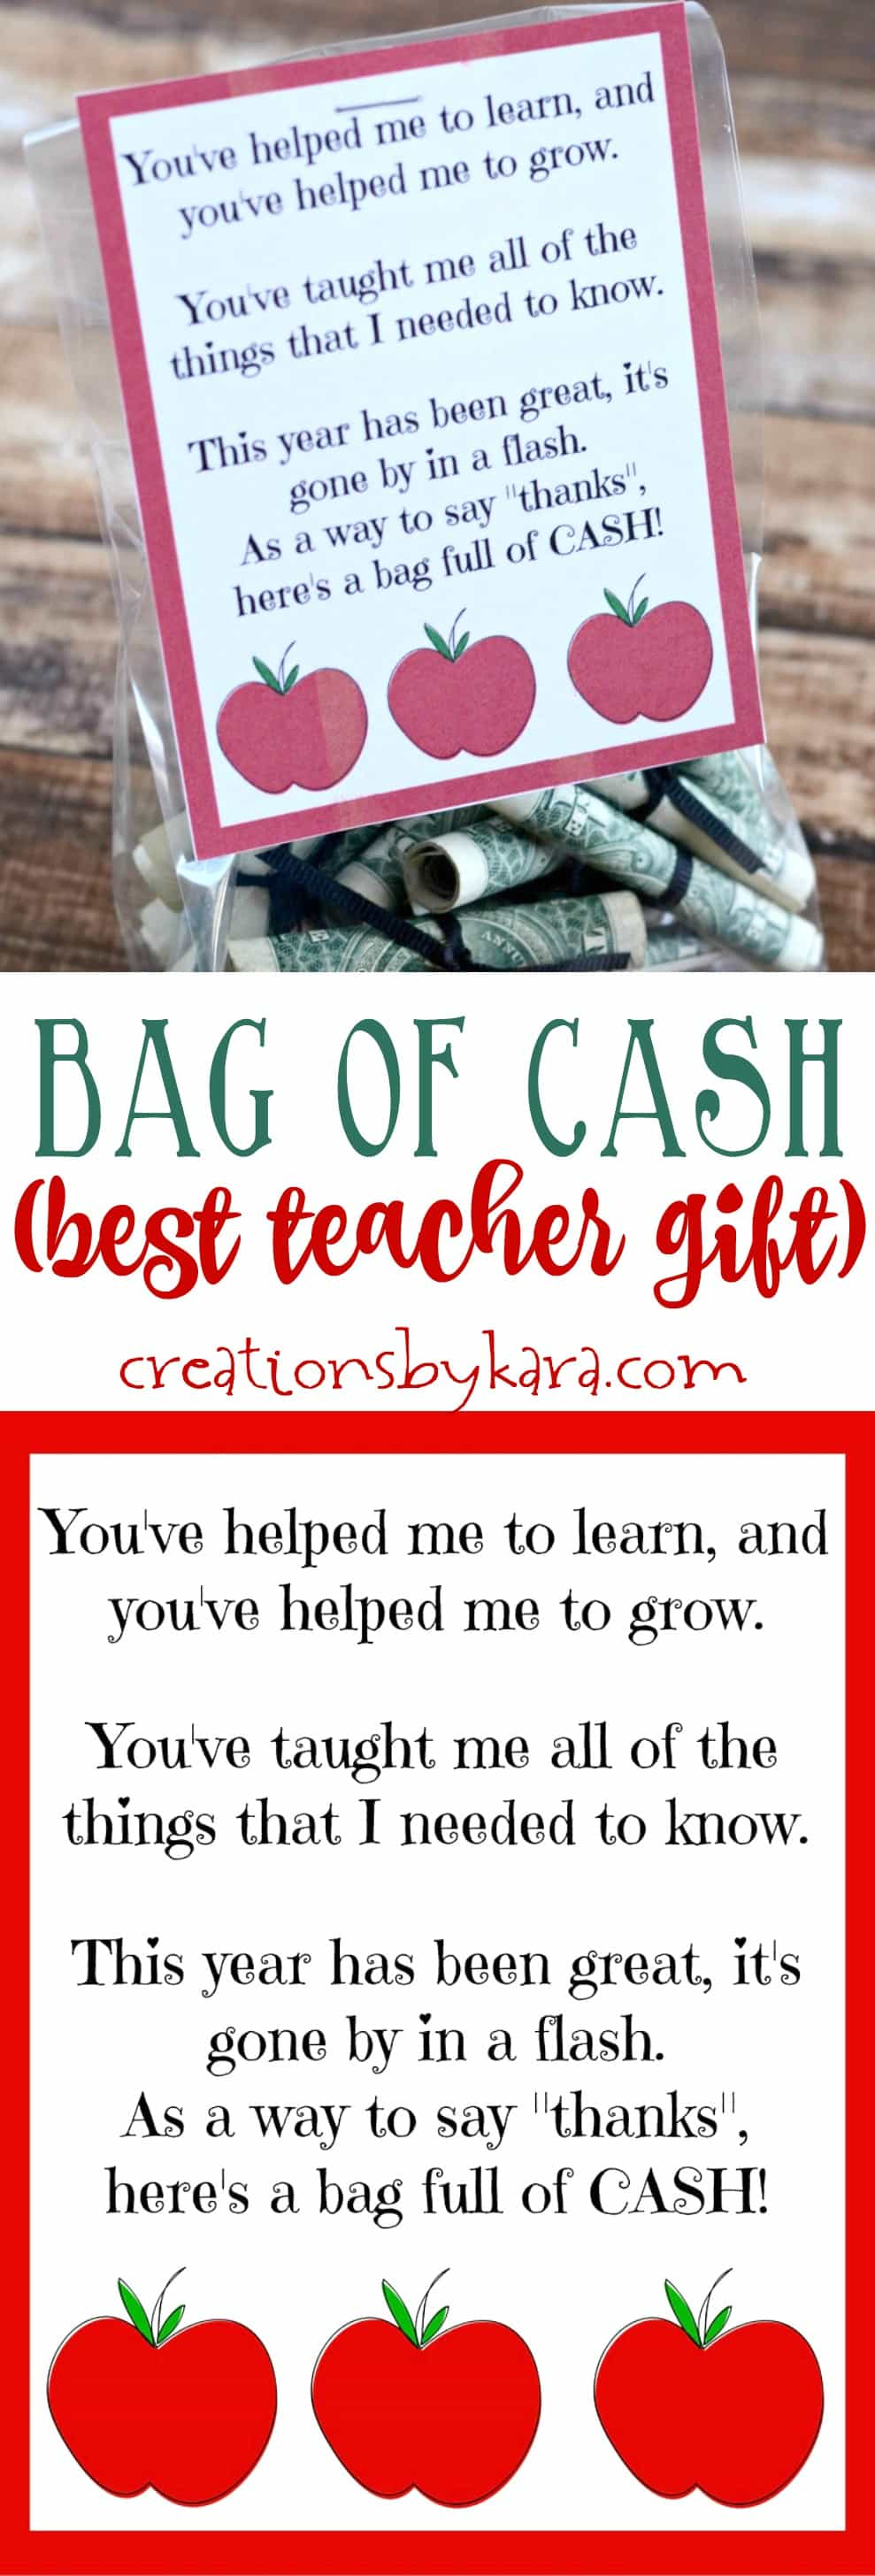 Best teacher gift - a bag of cash with printable note card. Any teacher would love this gift. Perfect for teacher appreciation or end of year gifts.